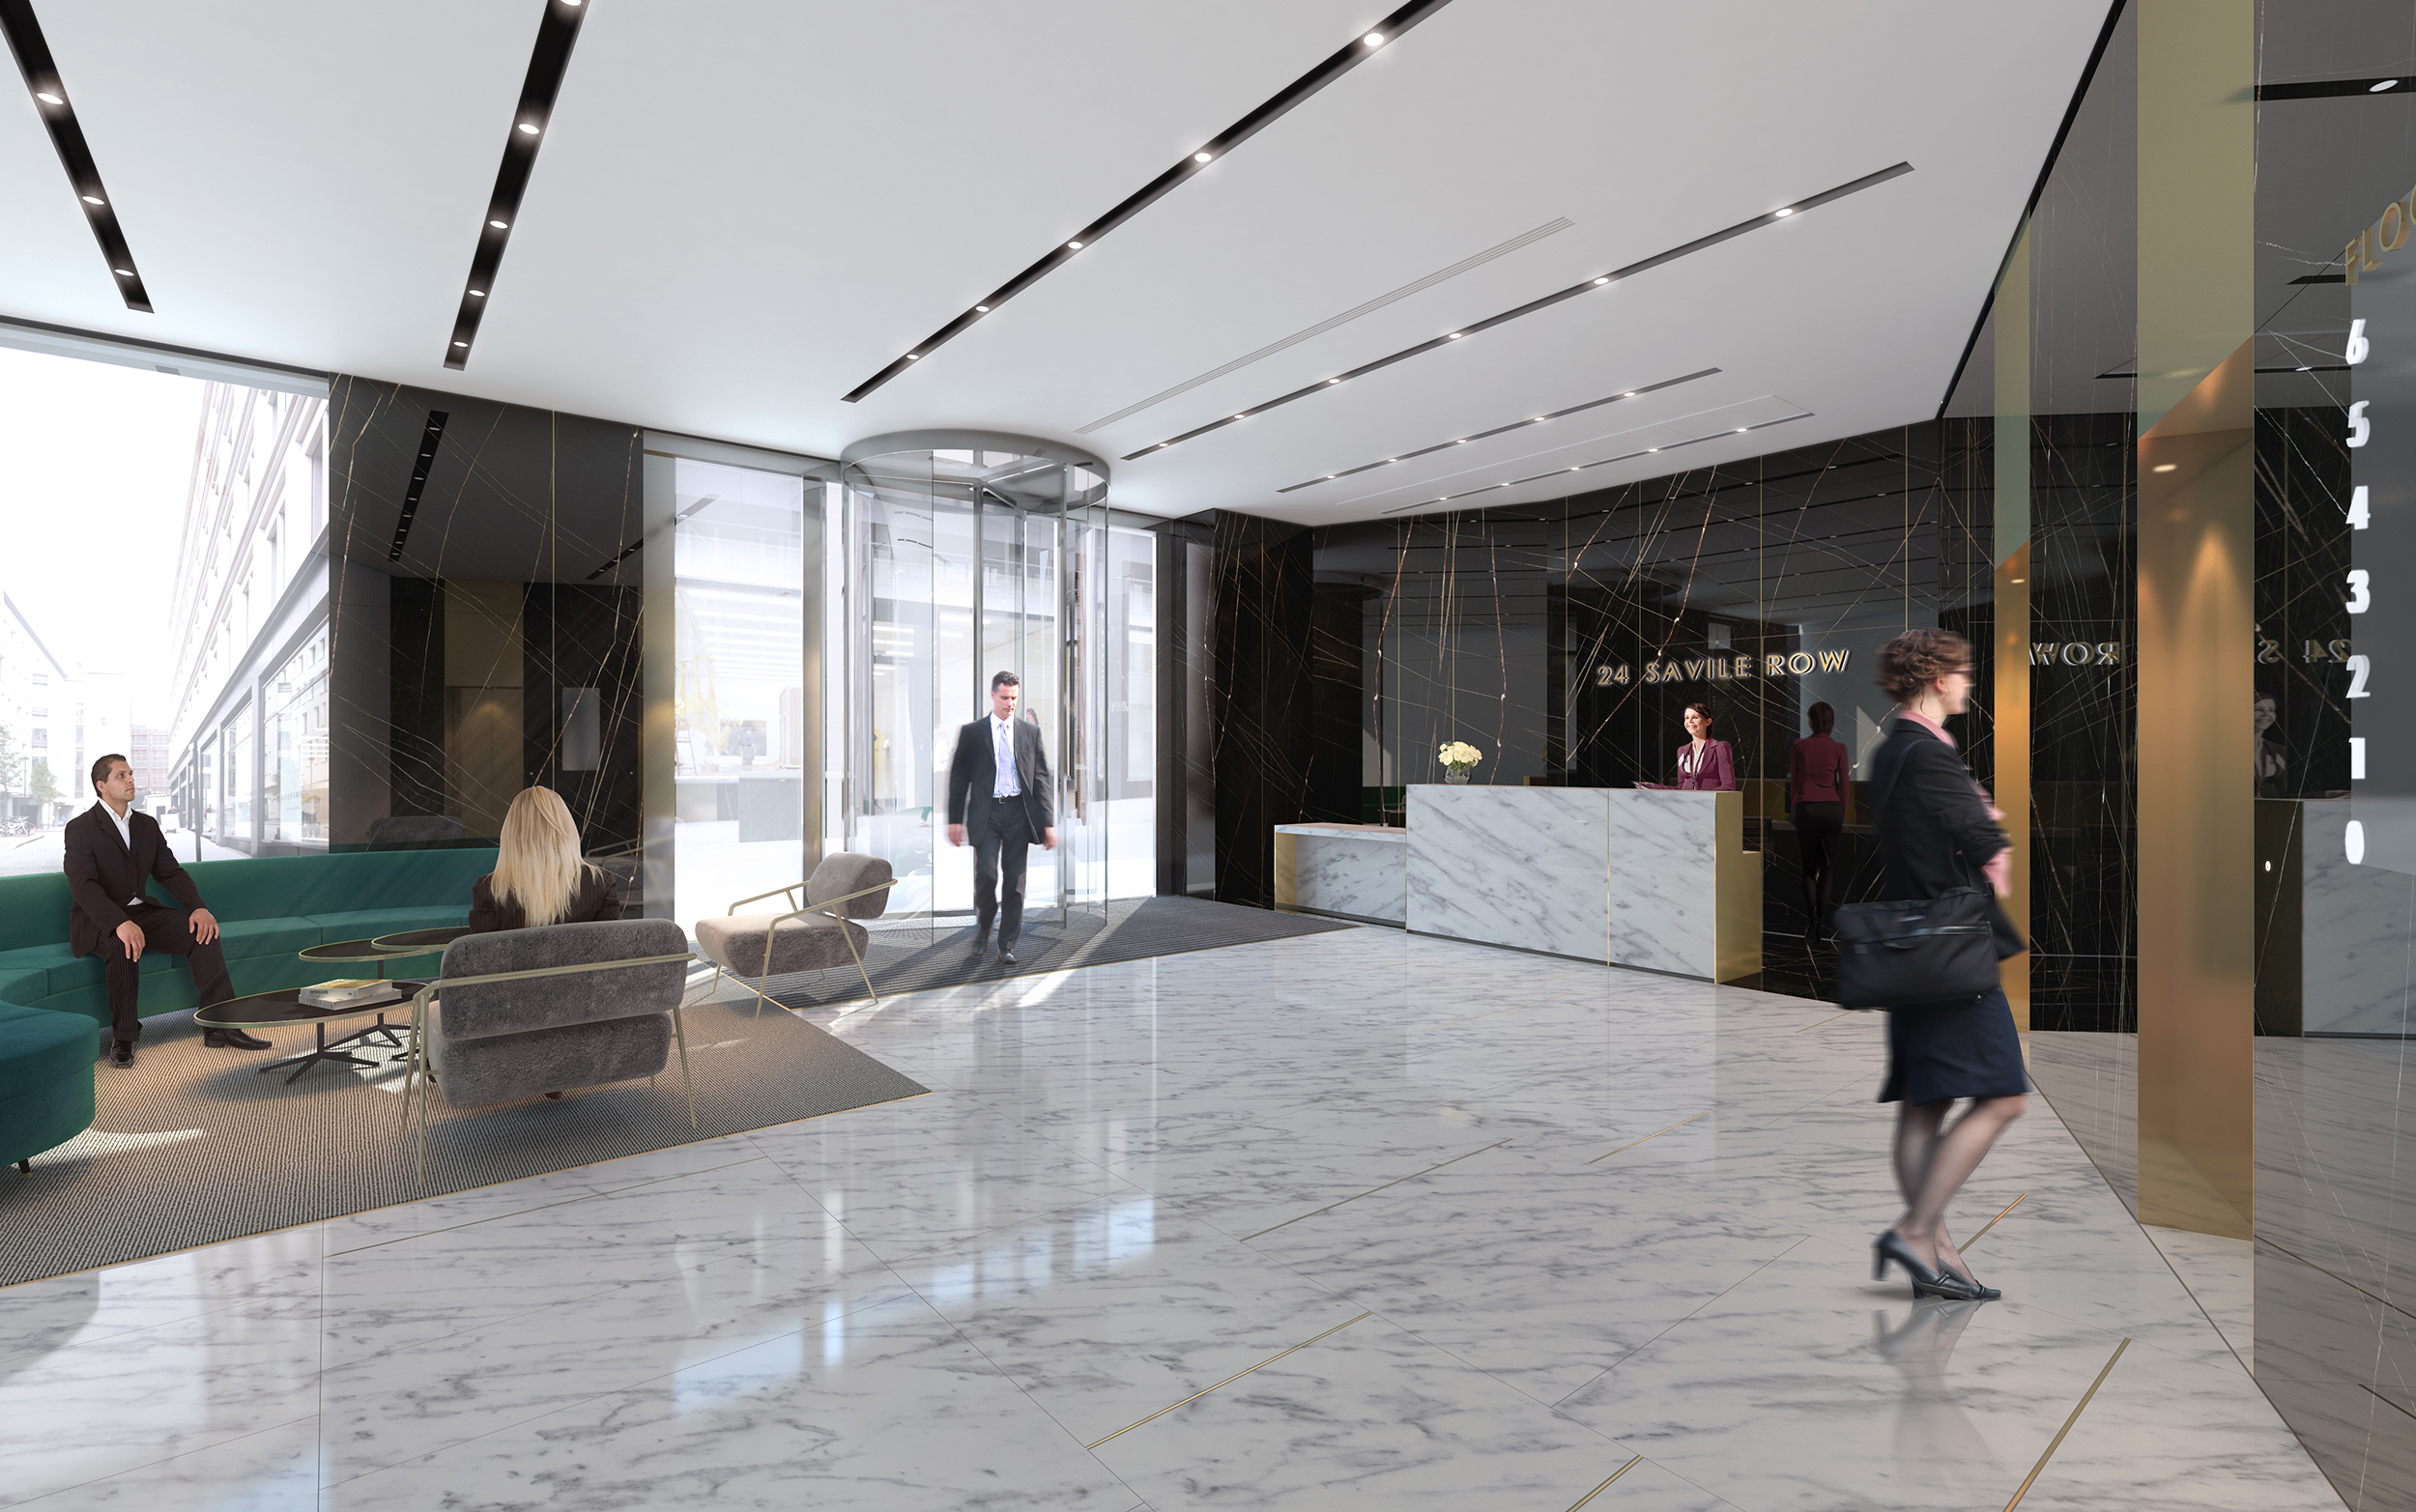 CGI-conduit-st-reception-interior.jpg